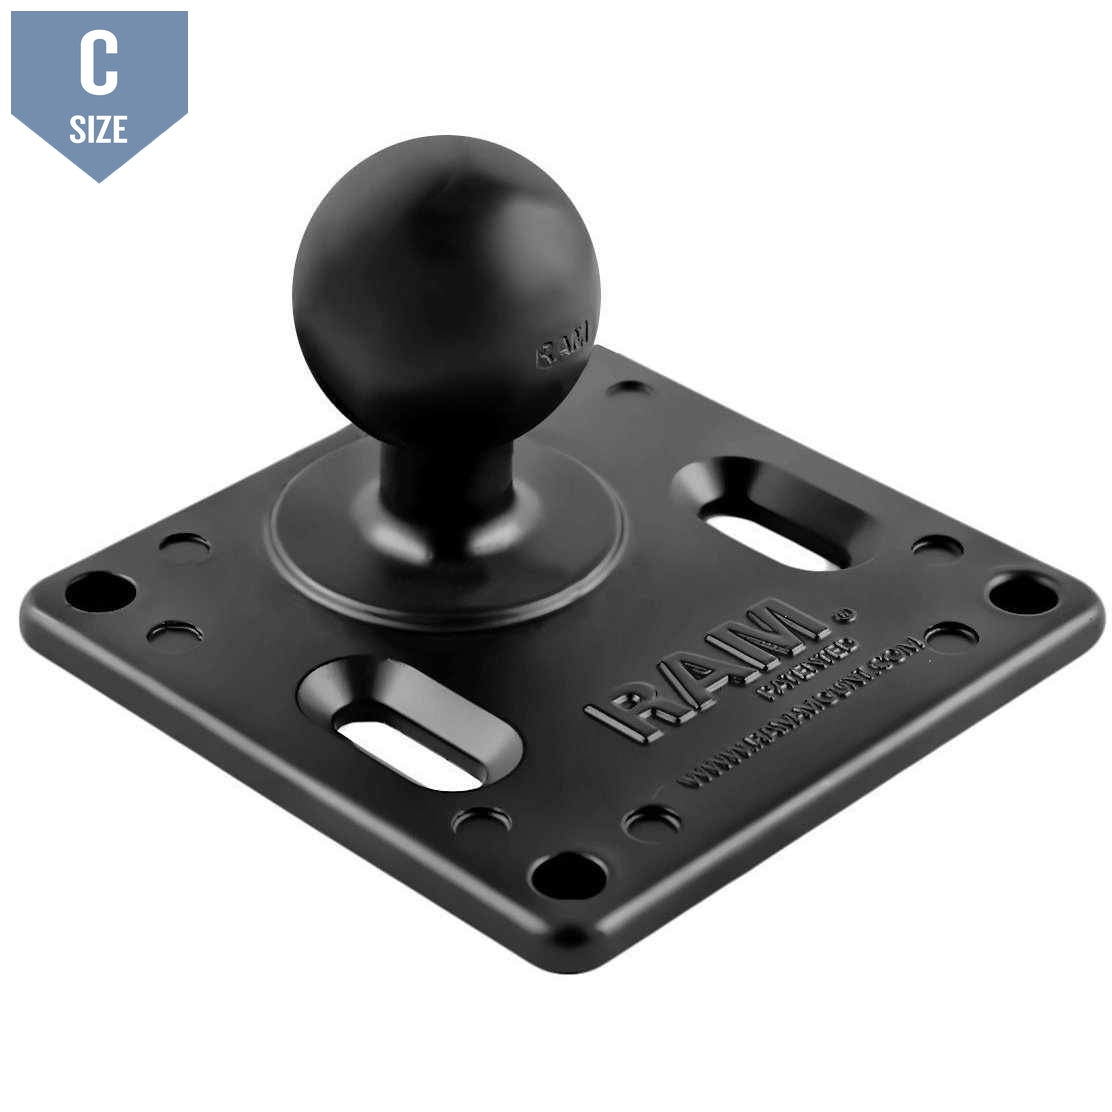 RAM 75x75mm VESA Plate with C Ball (RAM-2461U) - Modest Mounts